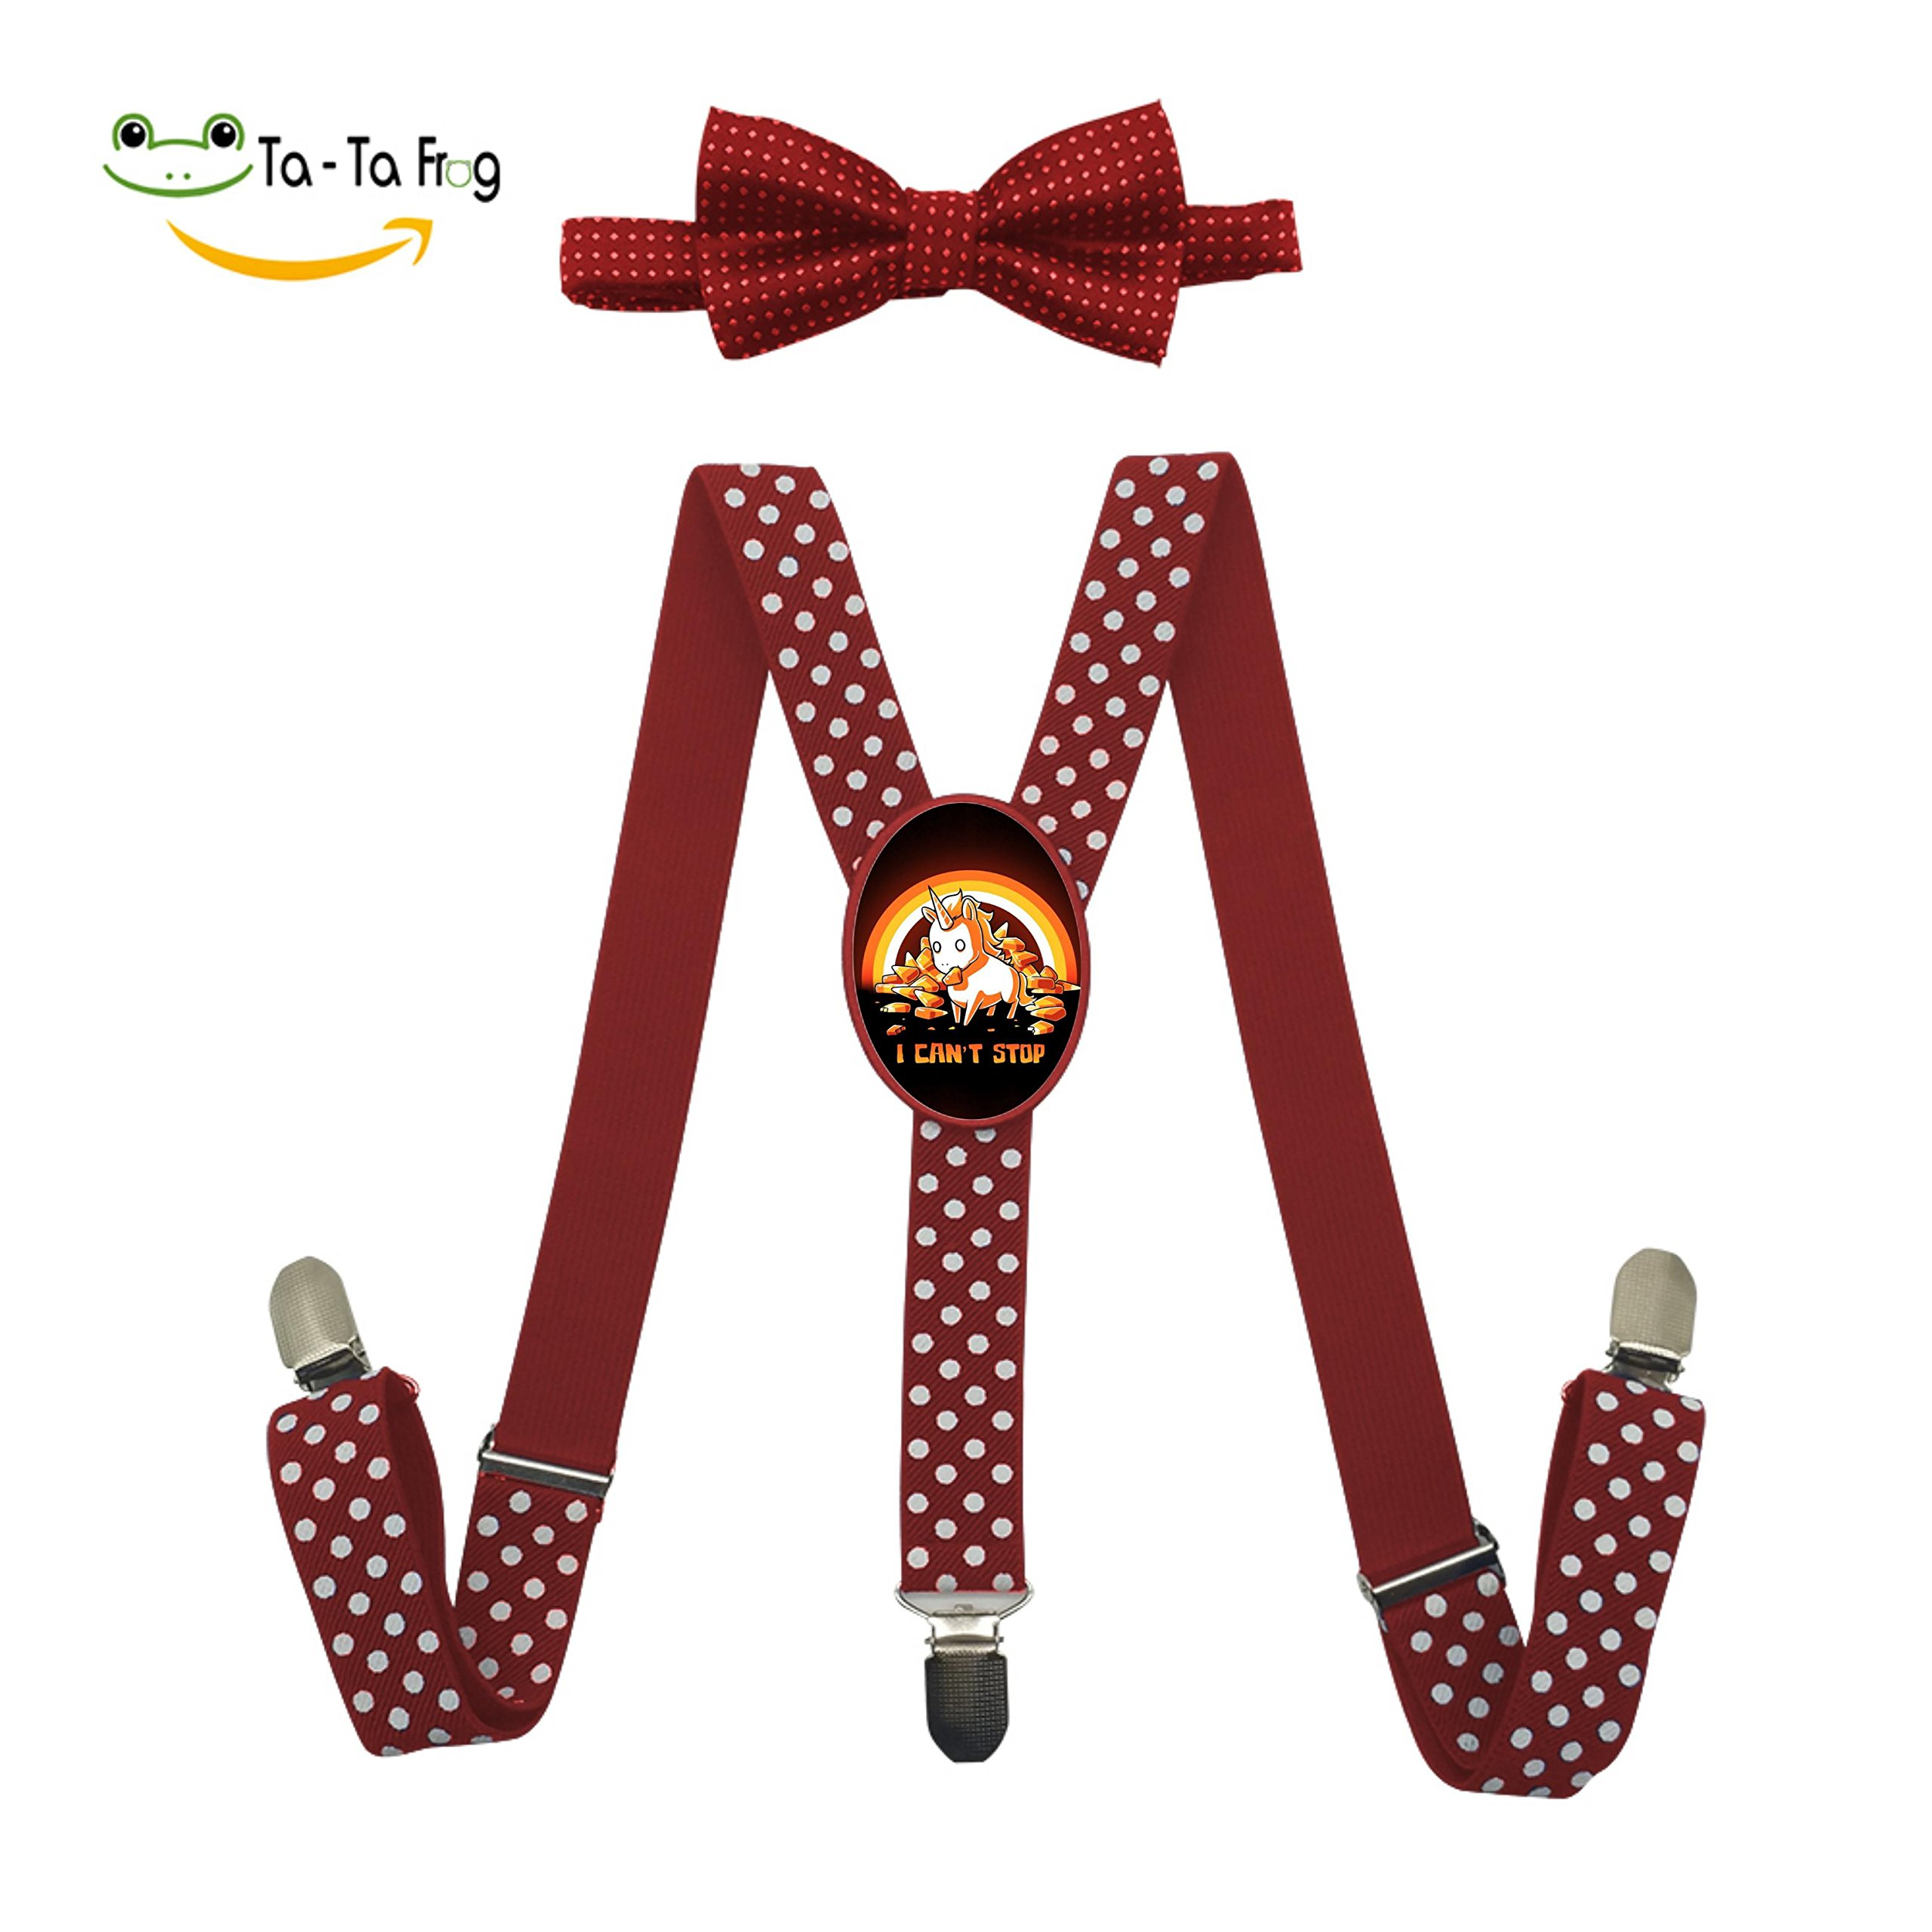 Grrry Kids Love this Halloween Unicorn Adjustable Y-Back Suspender+Bow Tie Red